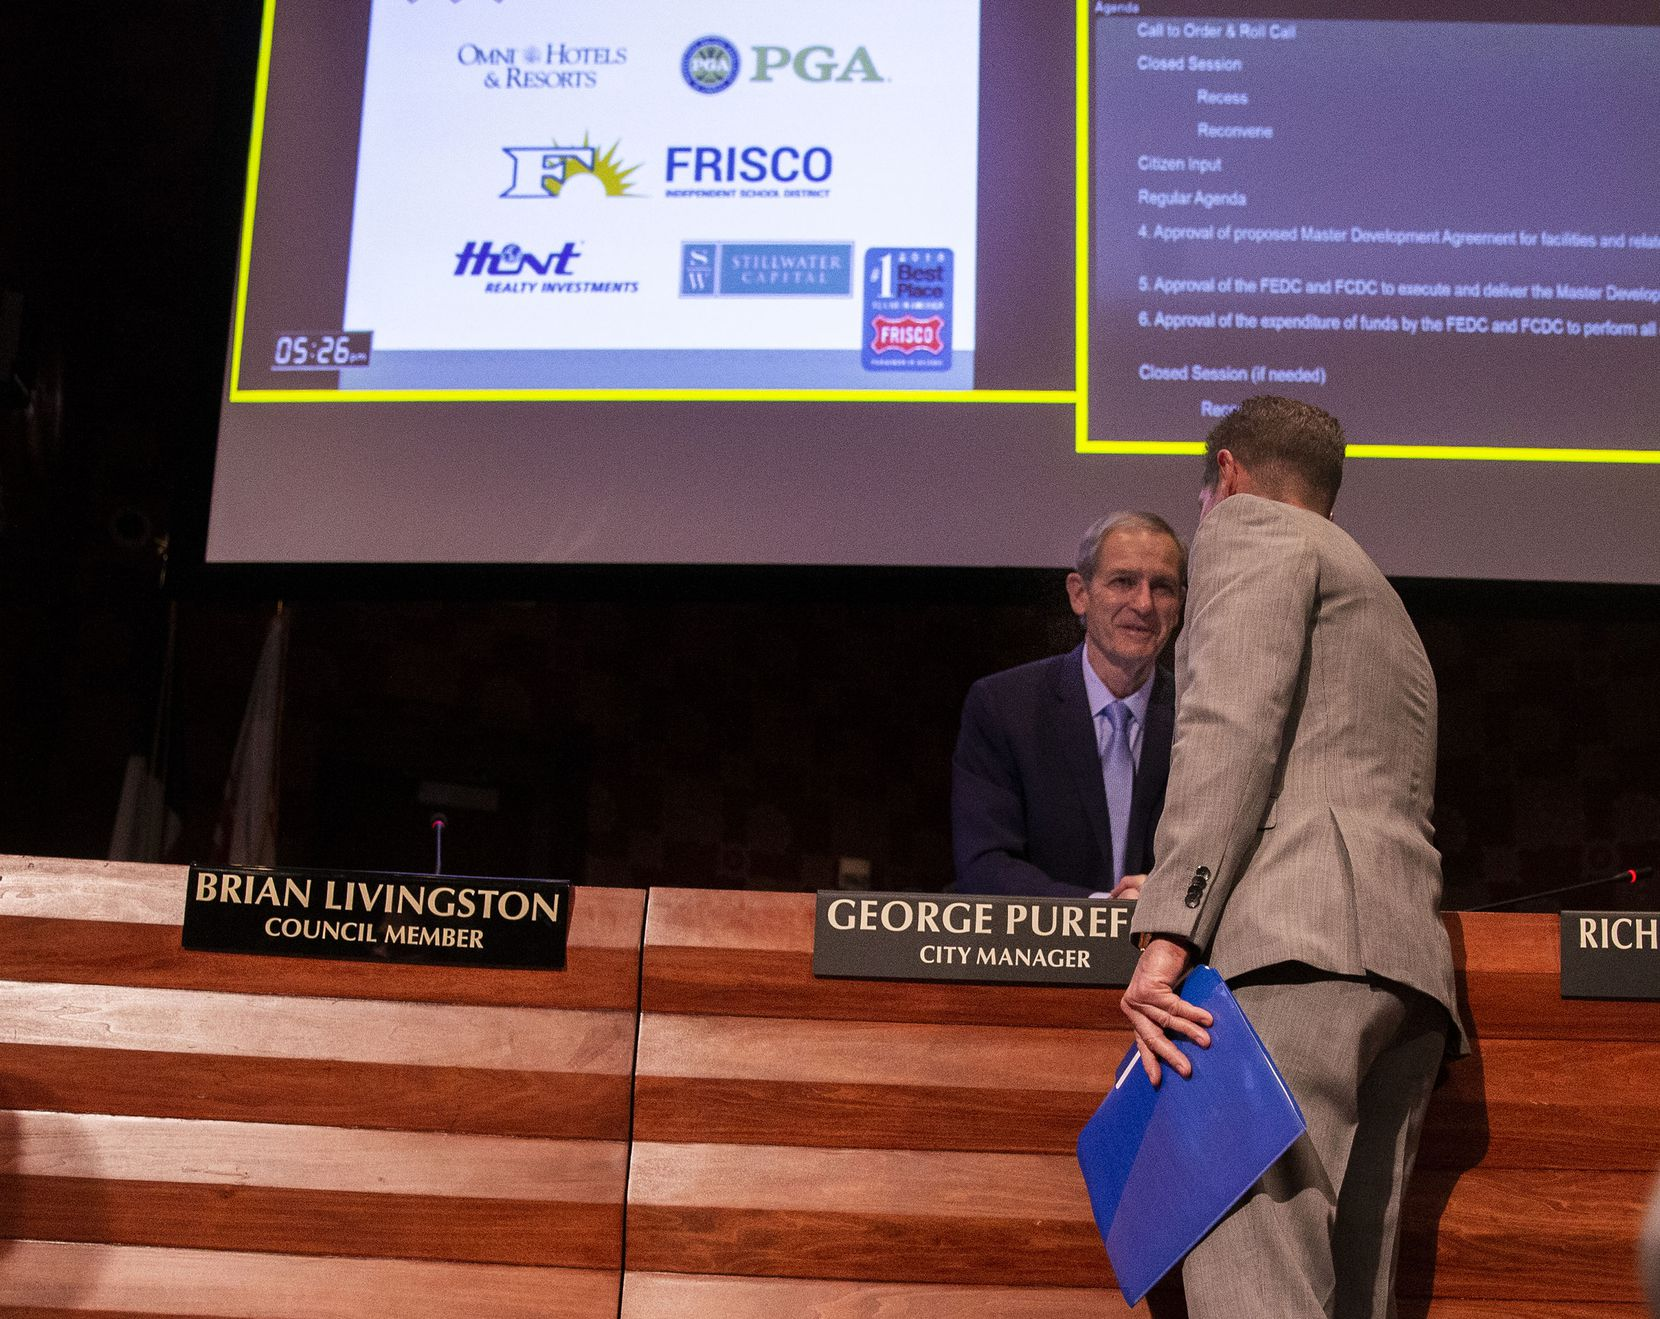 City manager George Purefoy (facing camera) shakes hands with Darrell Crall, PGA of America Chief Operating Officer, after a Frisco City Council meeting at the George A. Purefoy Municipal Center in Frisco, Texas, on Tuesday, December 4, 2018.